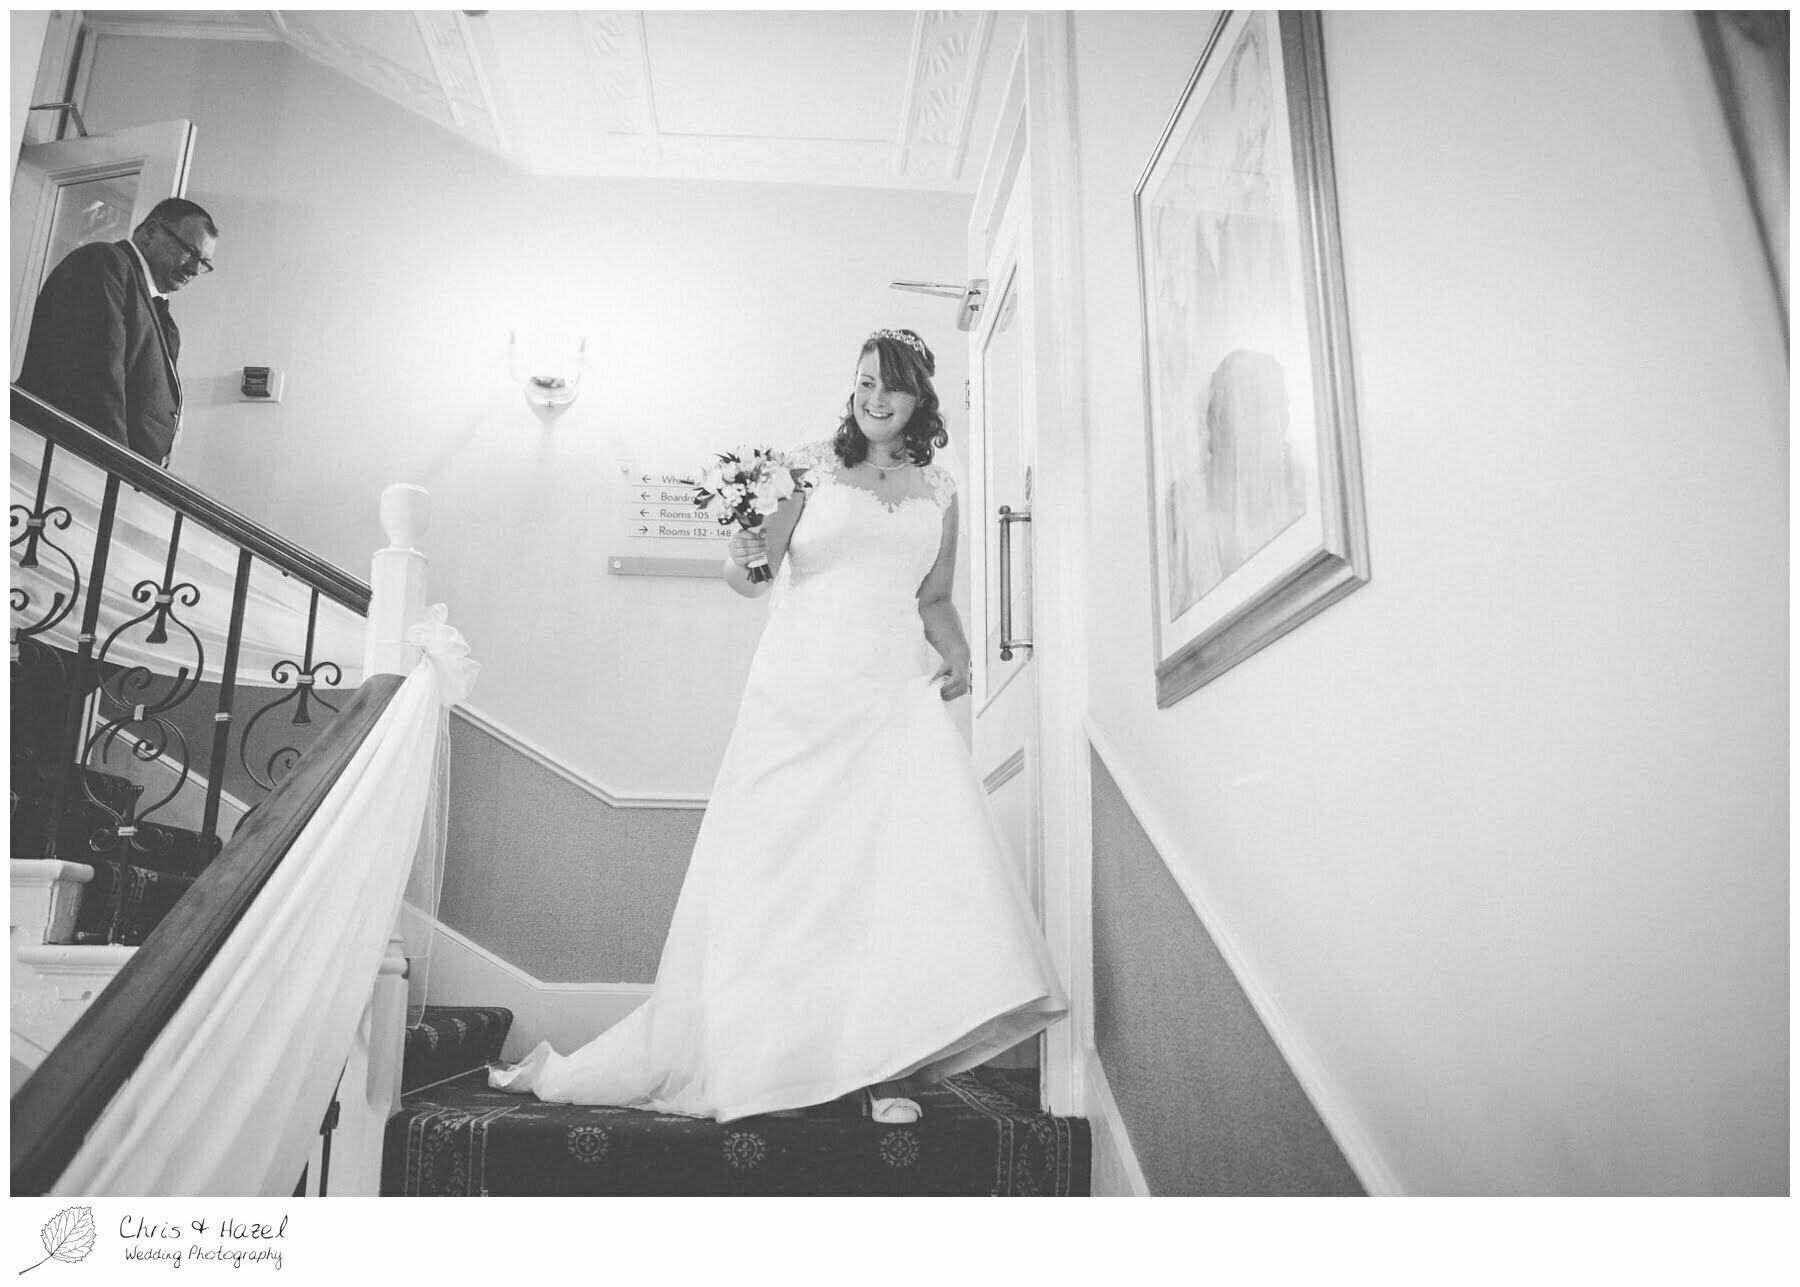 bride walking down stairs, Ilkley wedding photographer, Ilkley wedding photography, The Craiglands hotel wedding photography, west Yorkshire wedding photography, chris and hazel wedding photography, emily nunwick, sam nicholson, emily nicholson,